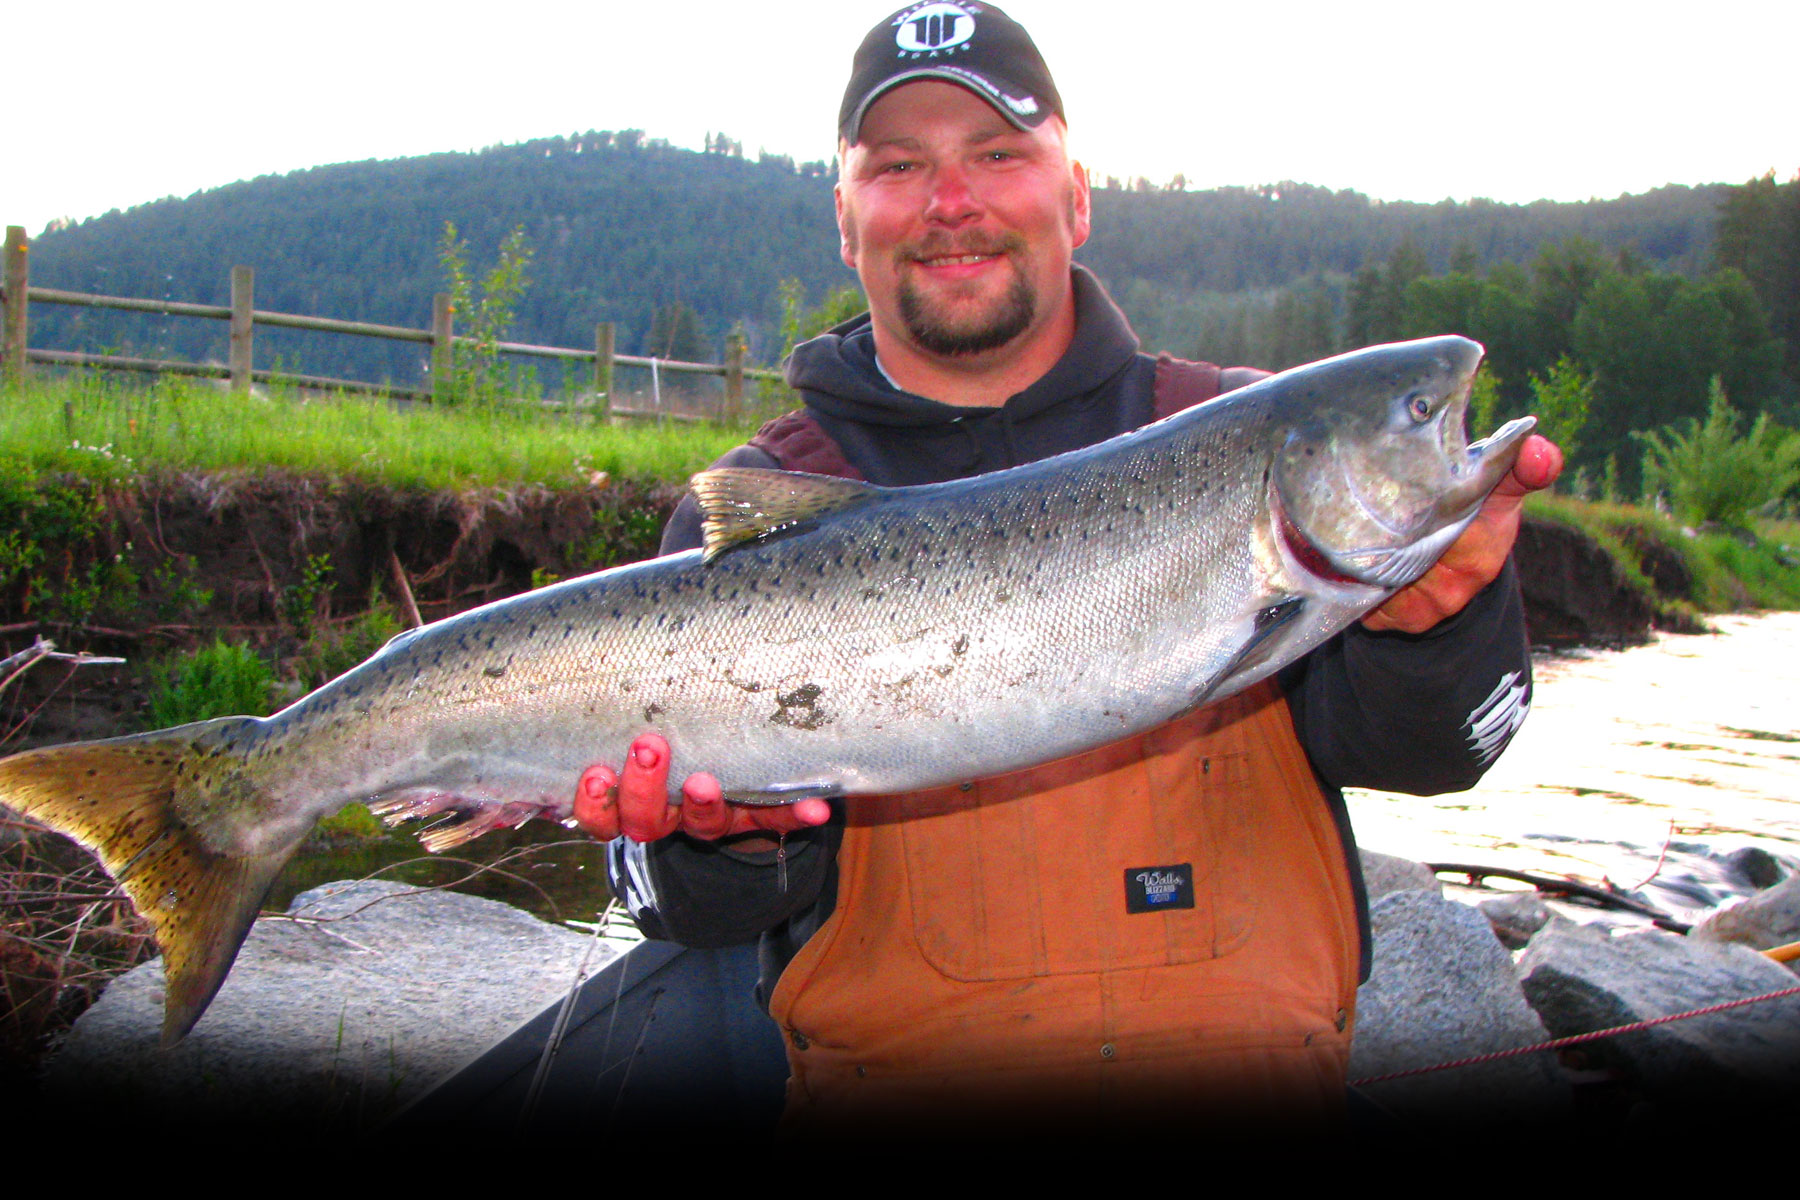 Hunting fishing in okanogan wa salmon fishing for Salmon fish pictures